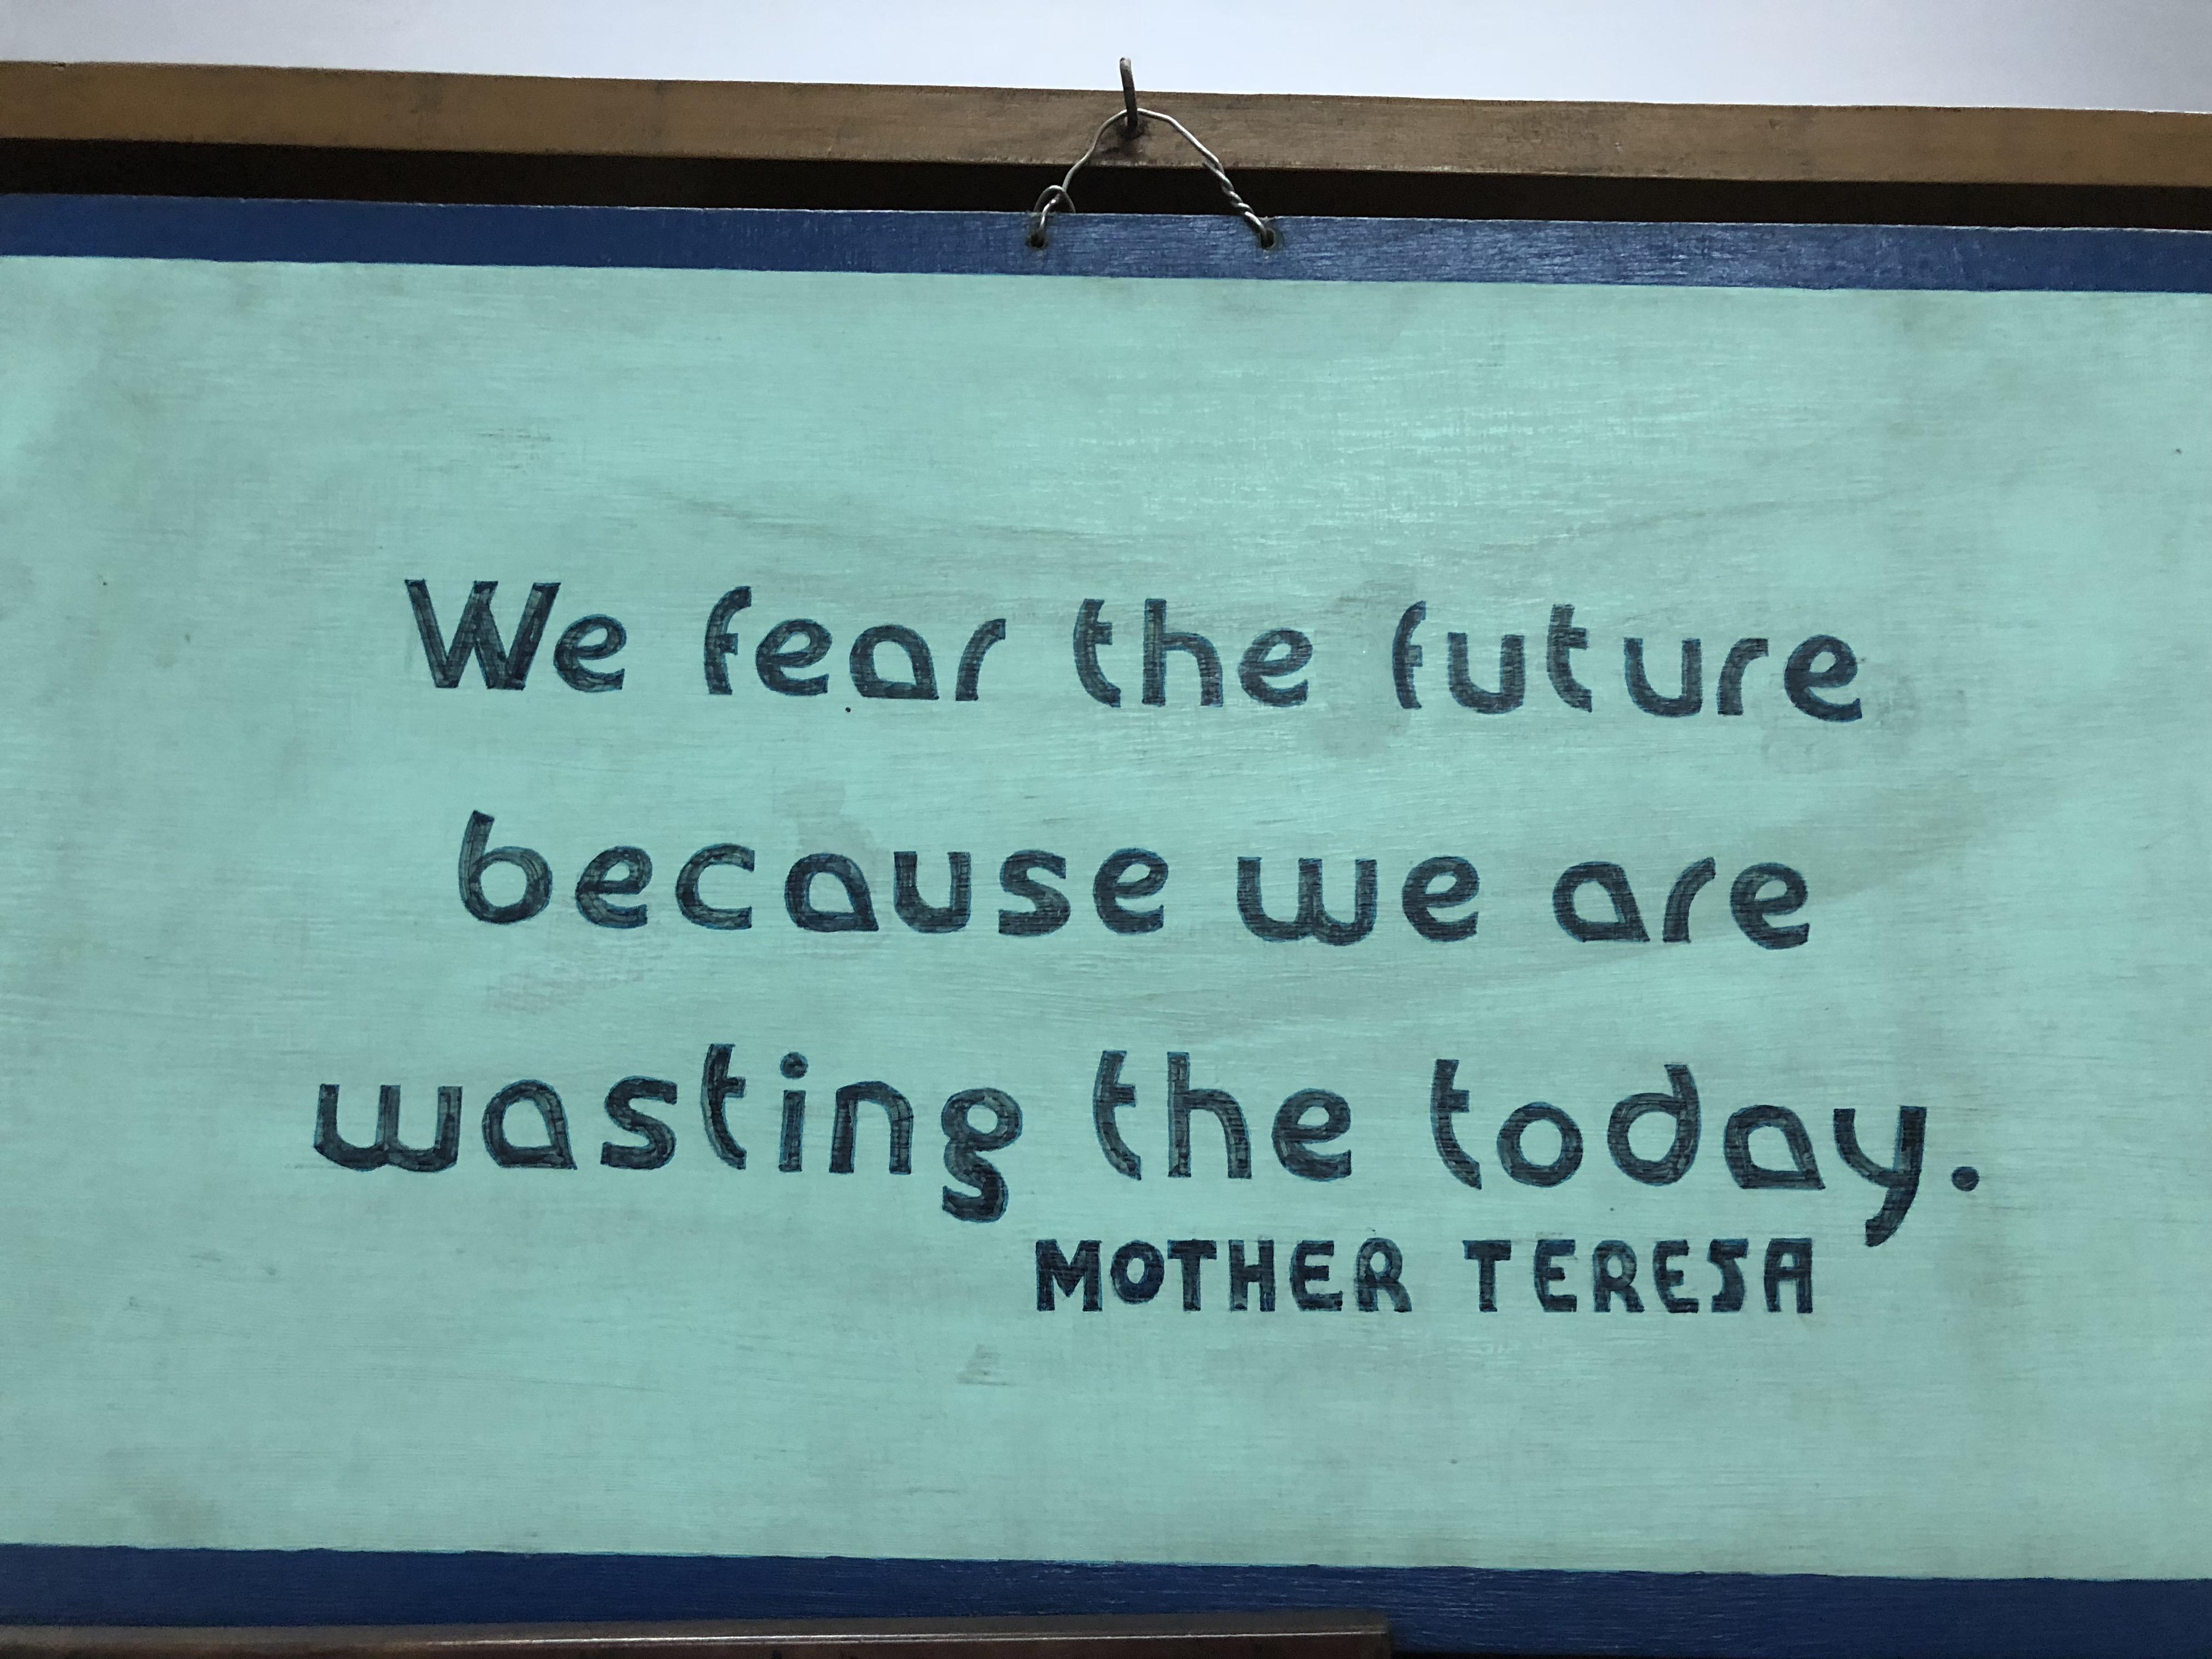 [IMAGE] Visited Mother Teresa's House in Calcutta, saw this sign: